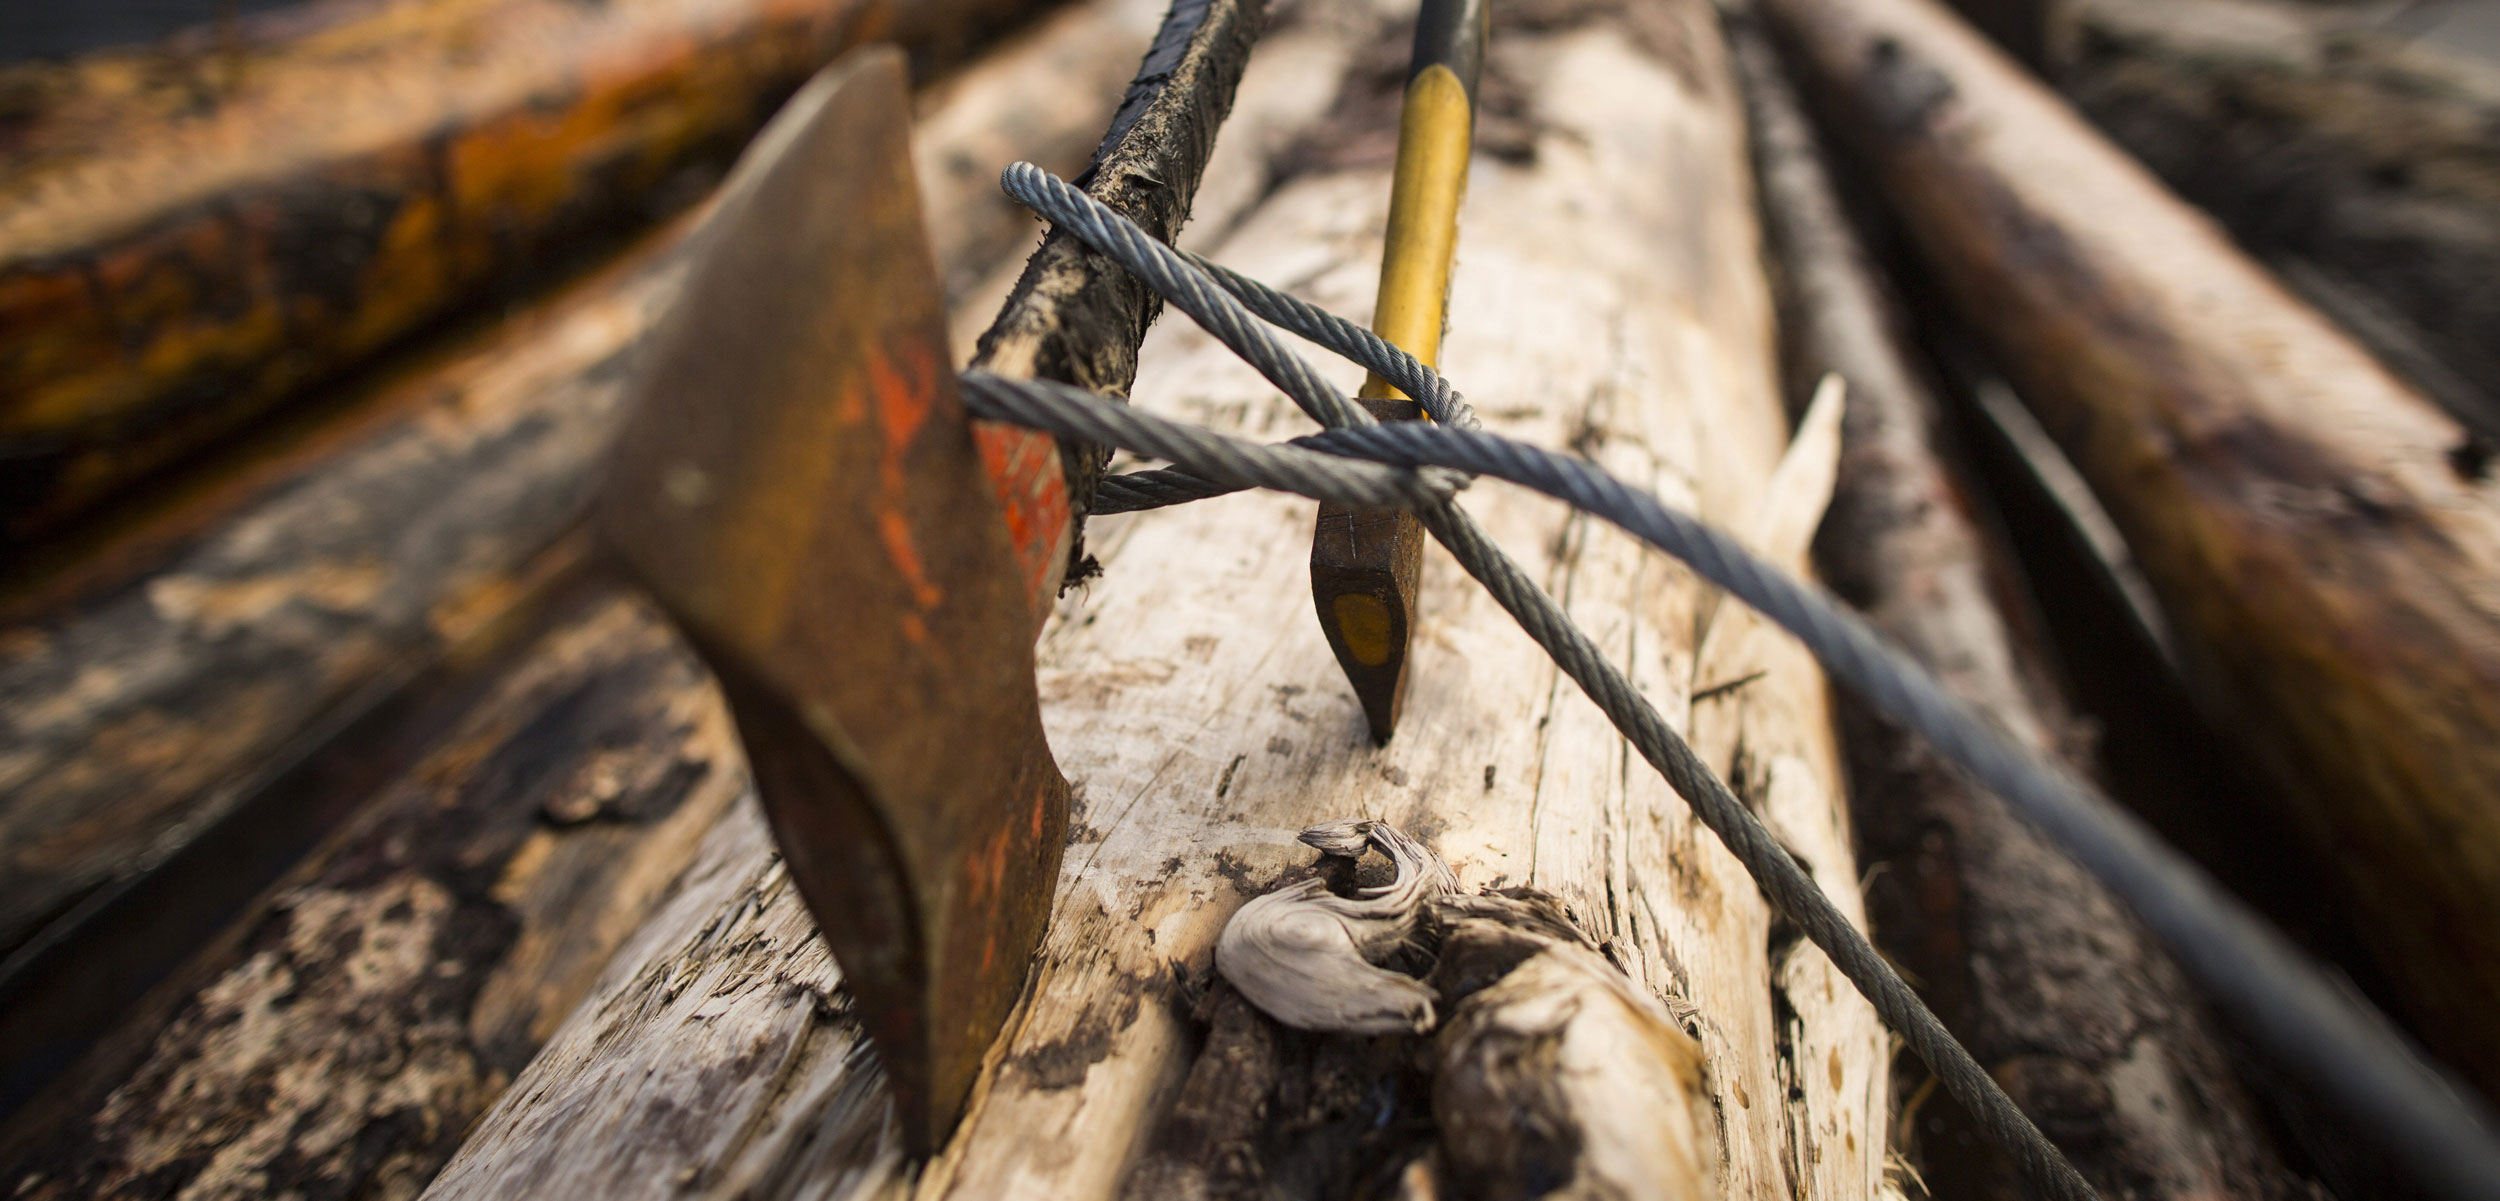 axes in salvaged logs in Gibsons, BC